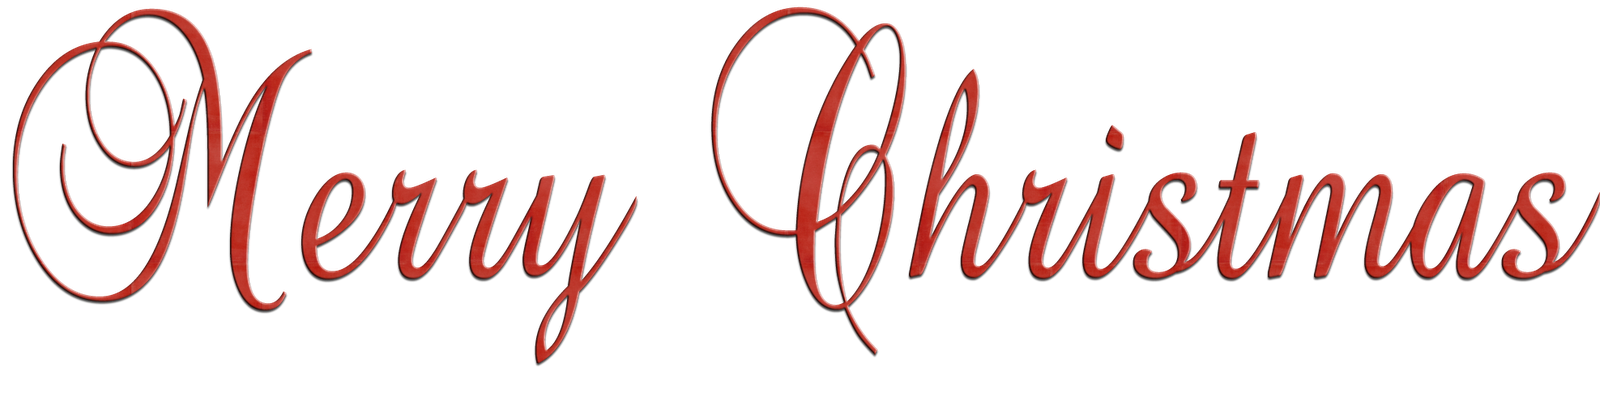 Merry Christmas Text PNG Transparent Merry Christmas Text.PNG Images ...